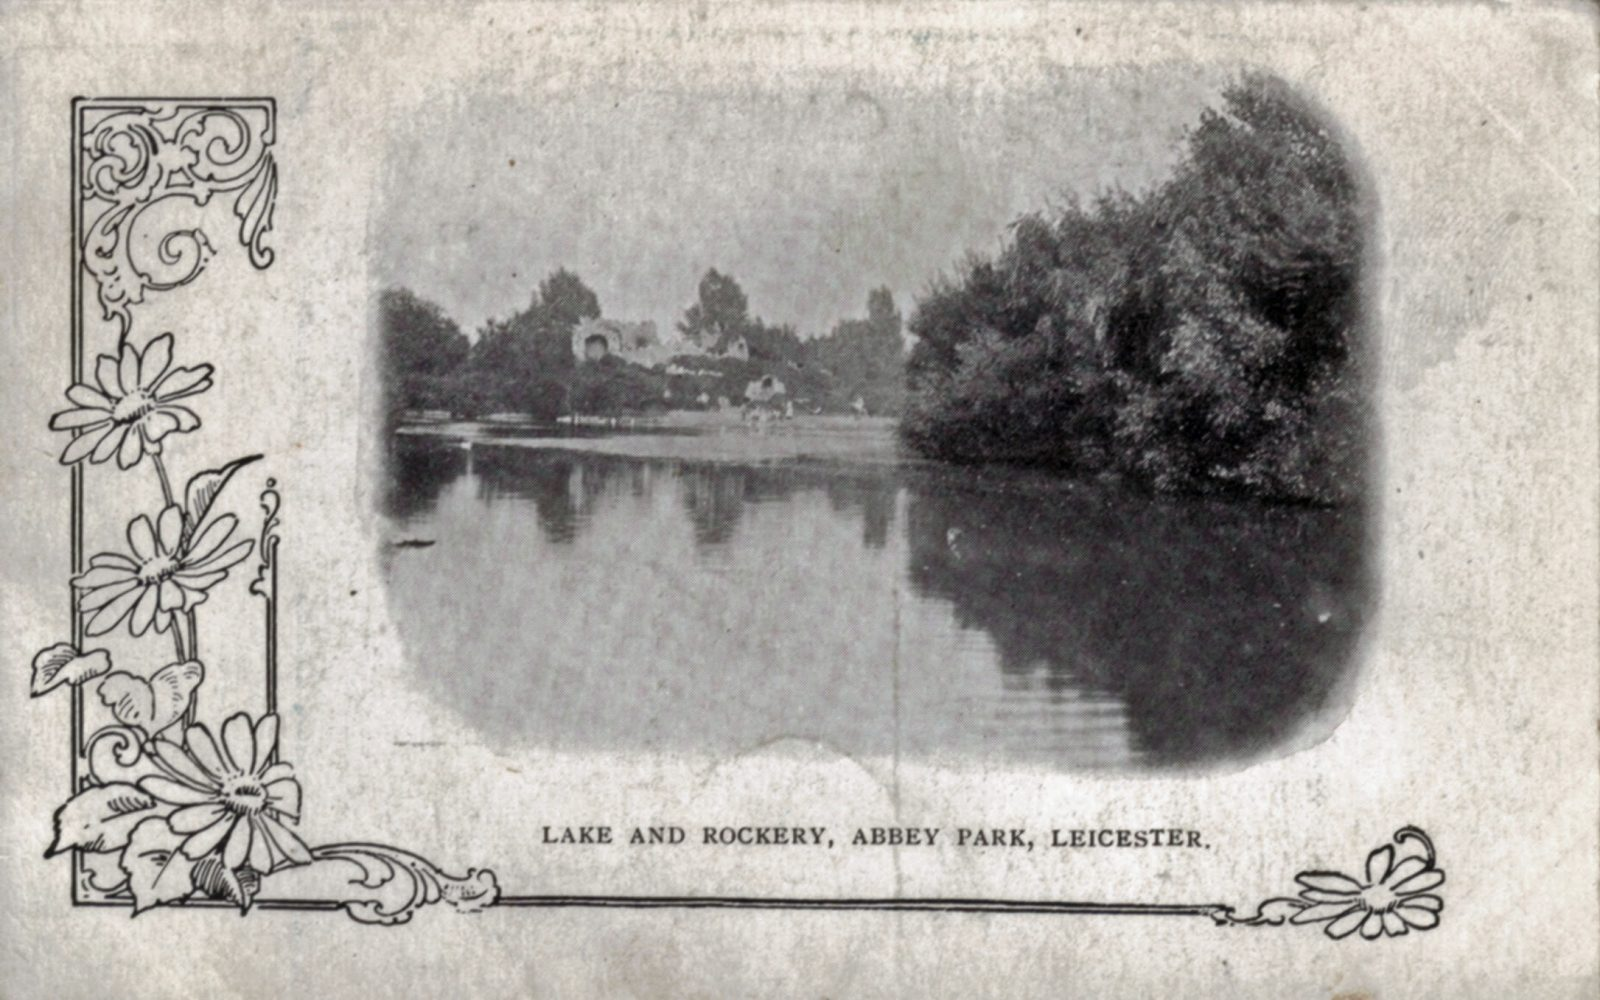 Abbey Park, Leicester. Pre 1900: Lake and rockery. (File:1212)